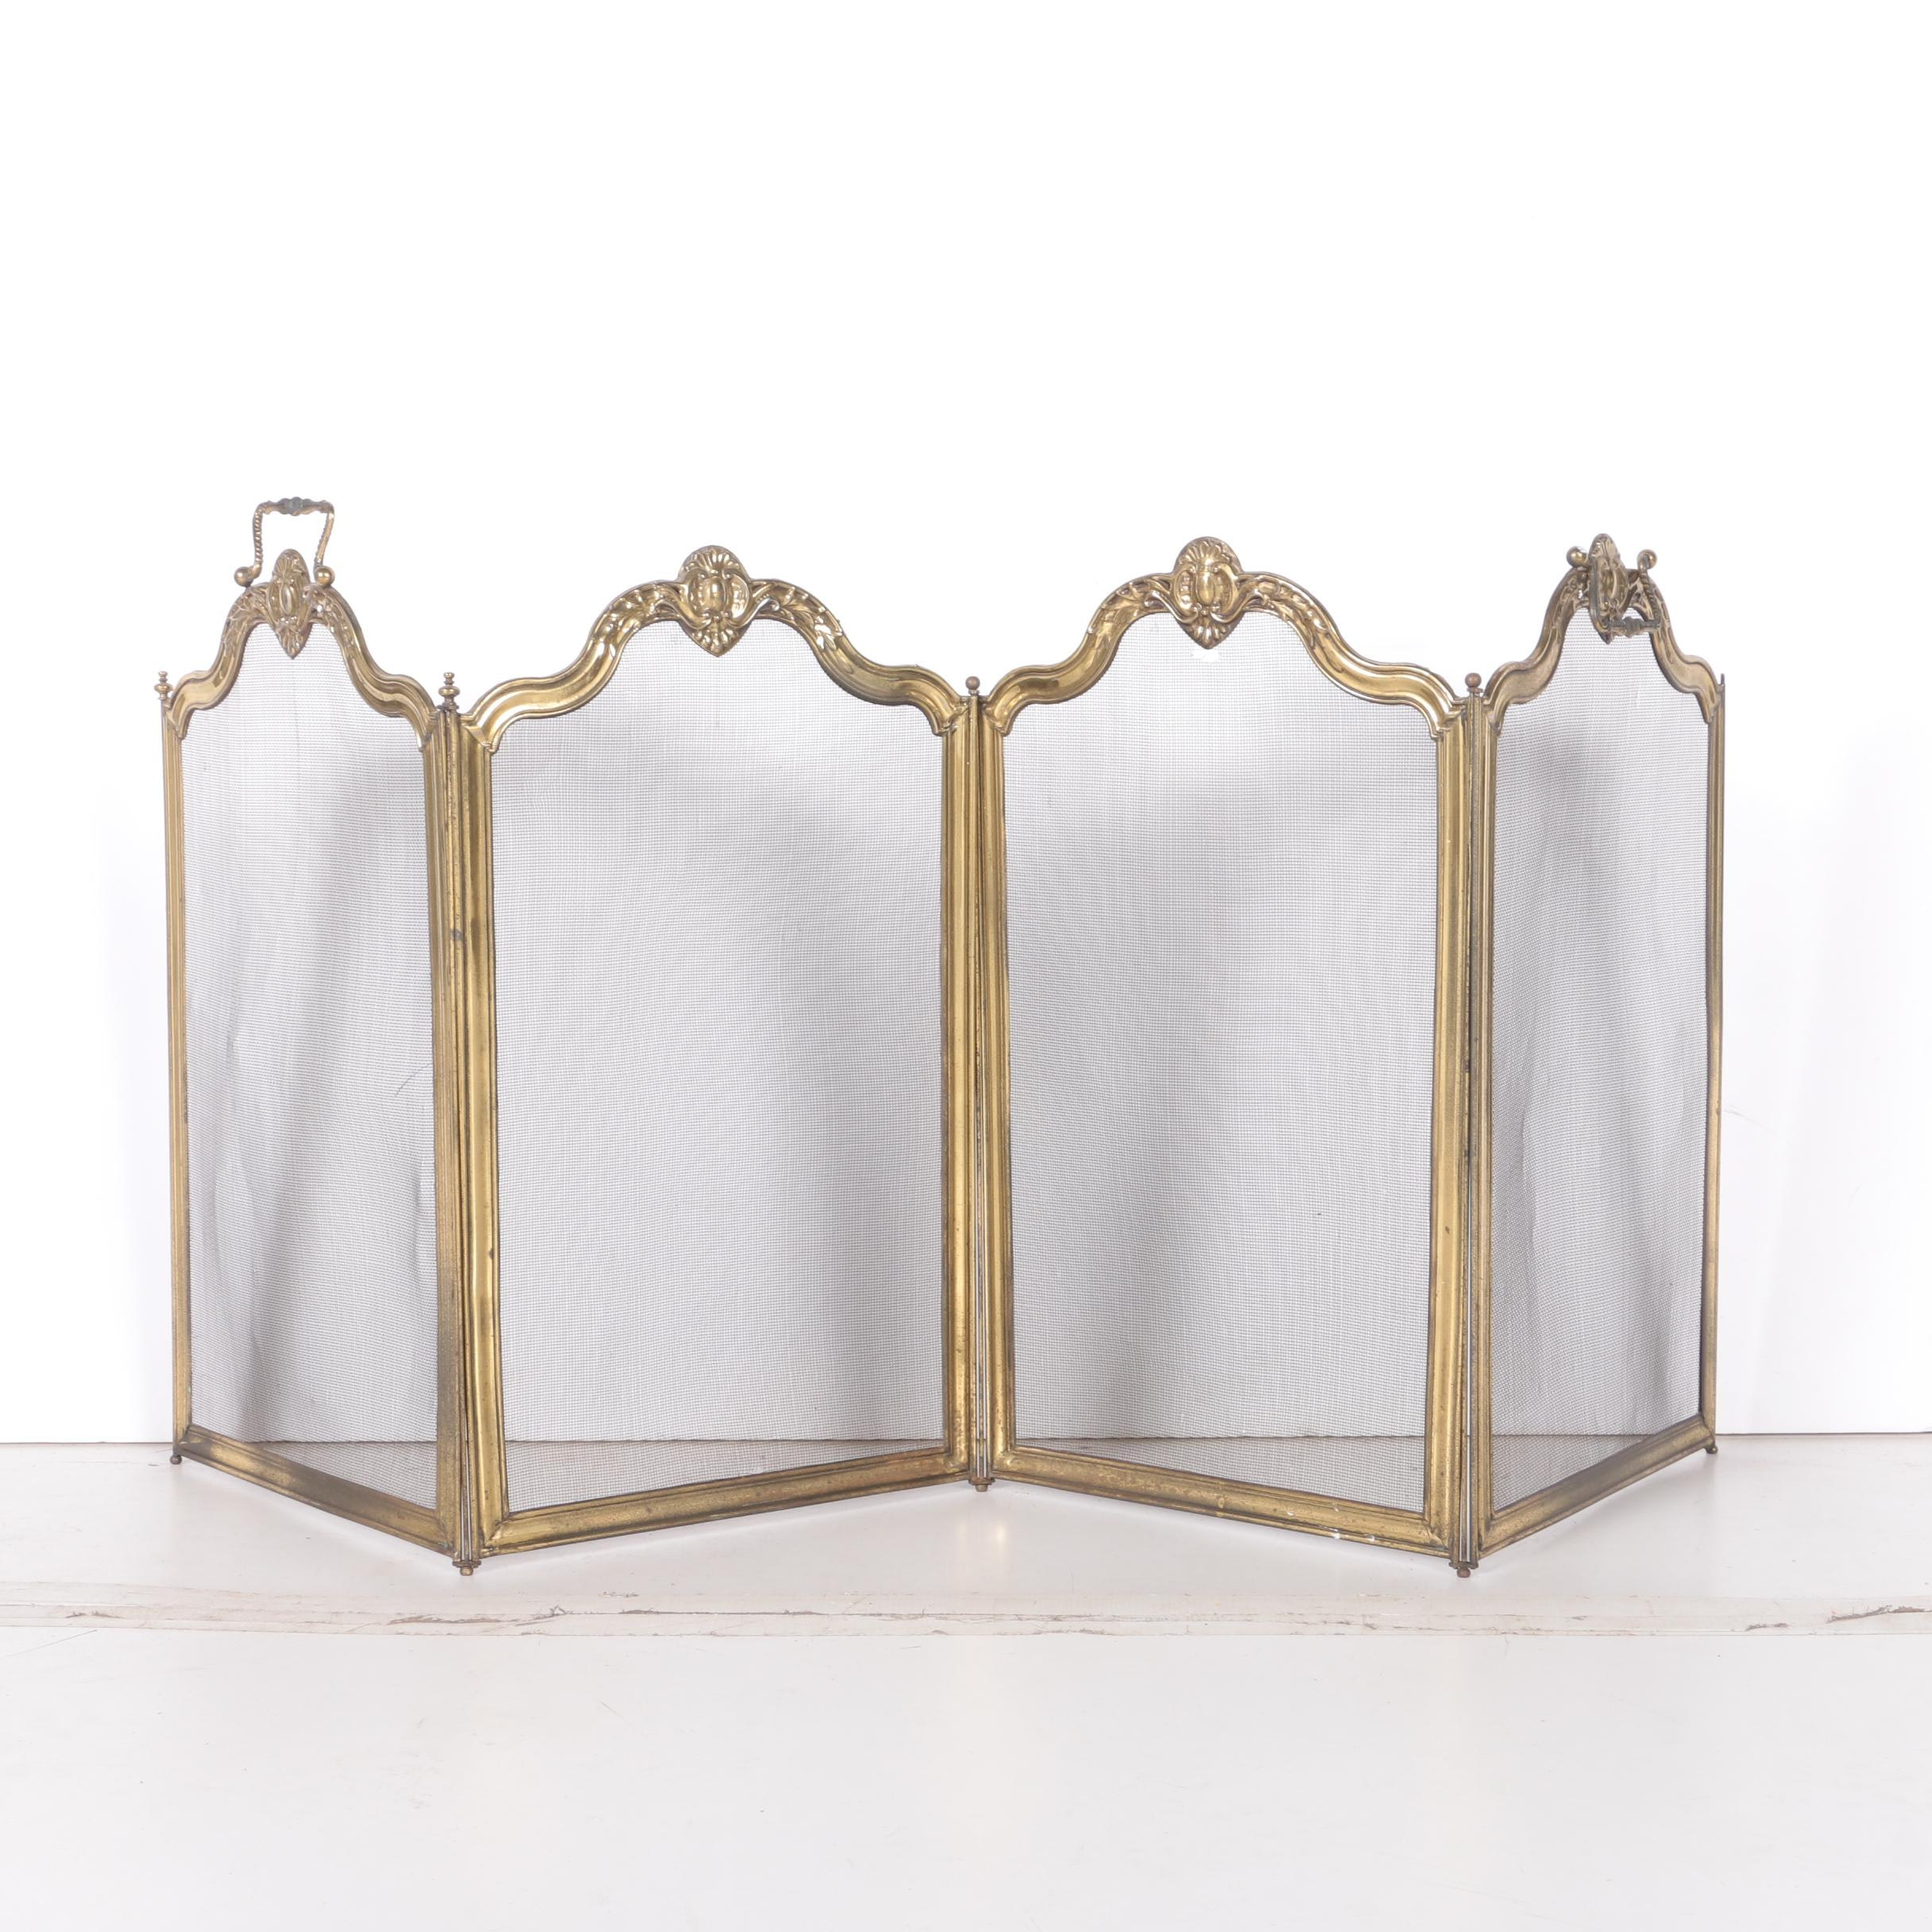 Folding Brass Fireplace Screen